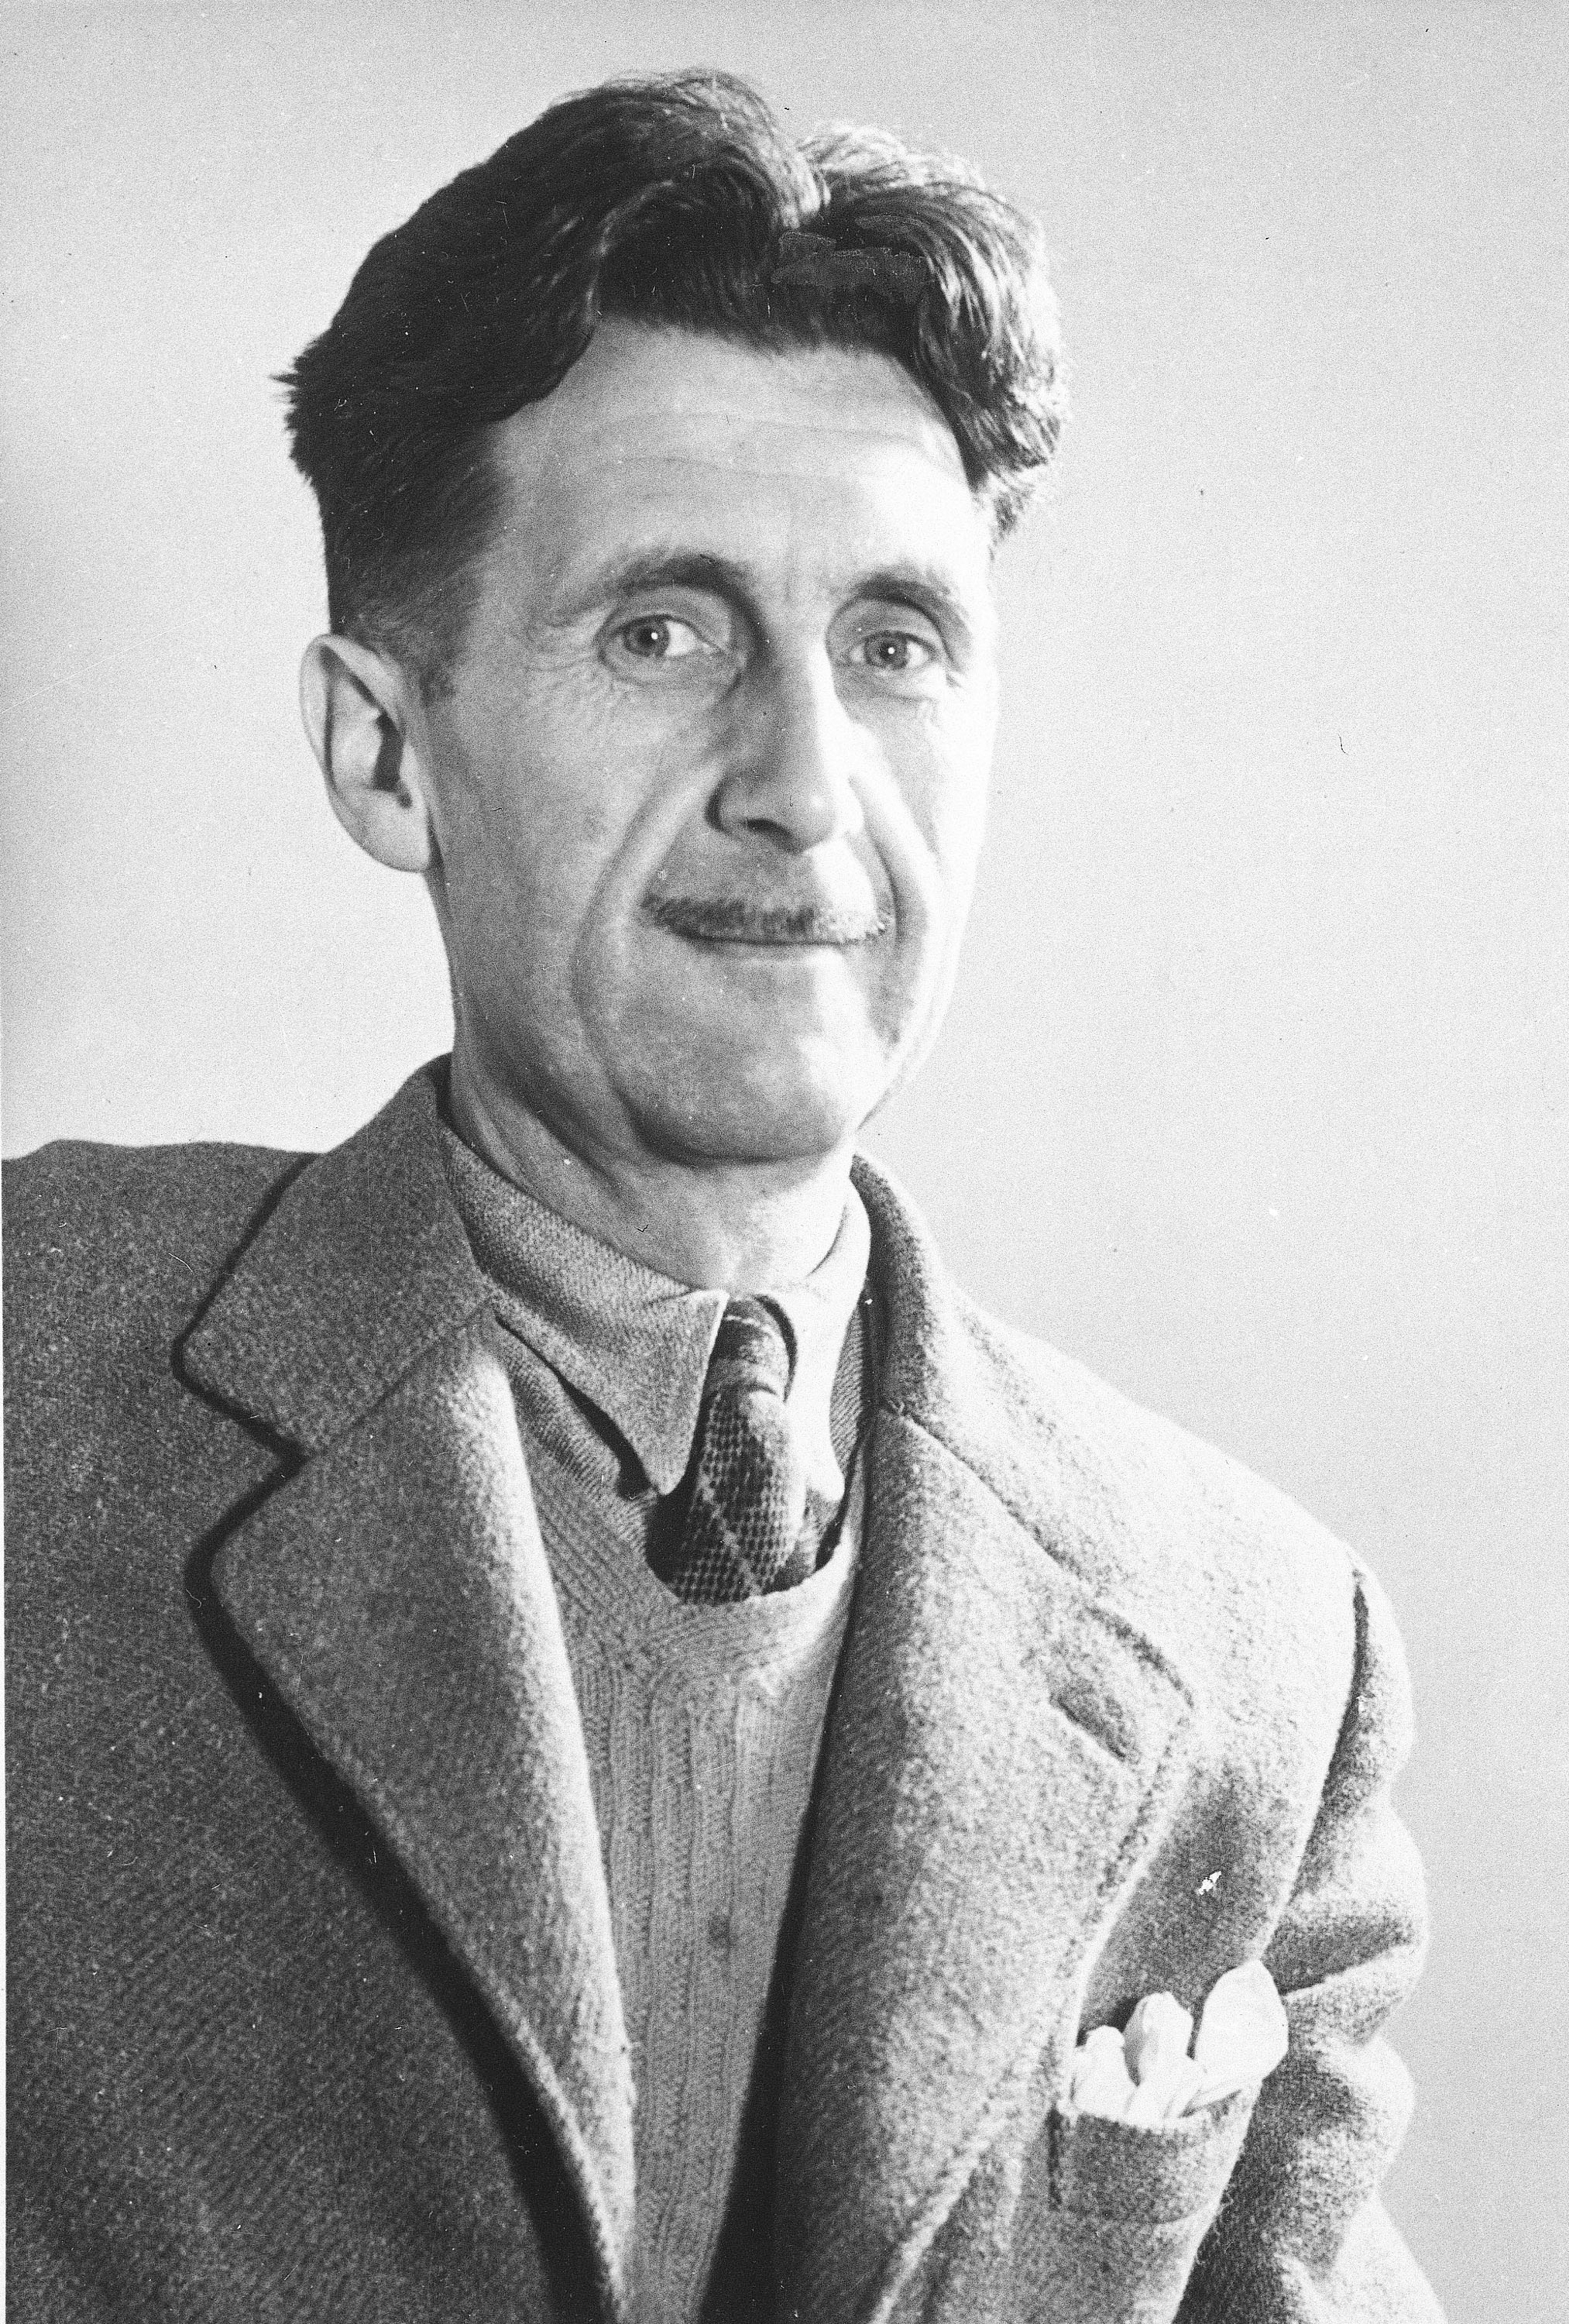 hero of animal farm essay A summary of chapter vii in george orwell's animal farm learn exactly what happened in this chapter, scene, or section of animal farm and what it means perfect for acing essays, tests, and quizzes, as well as for writing lesson plans.